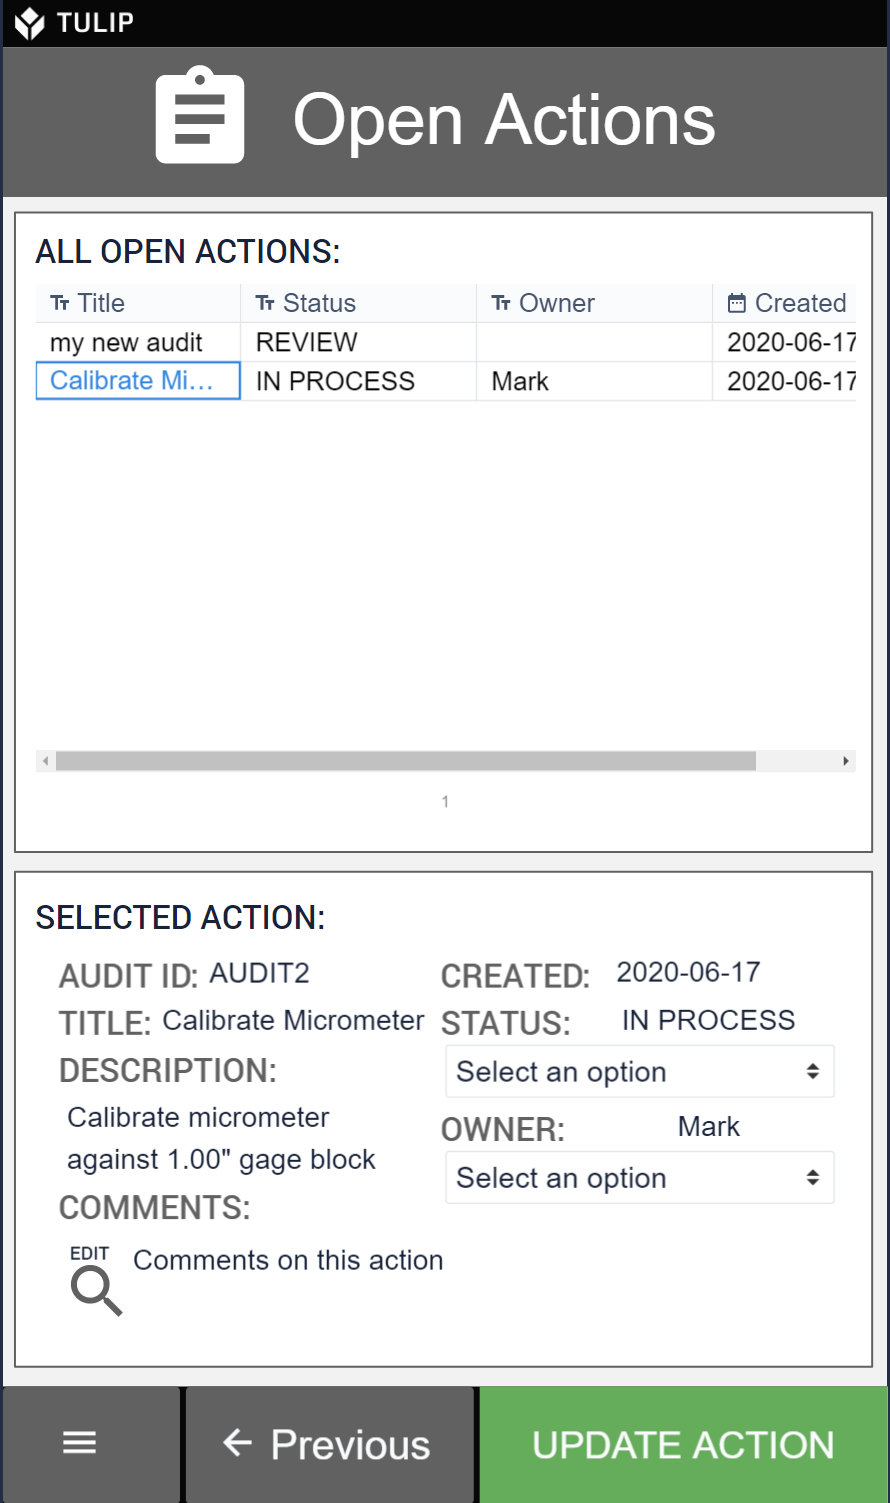 mobile audit applications let you see all of your open audits in one place